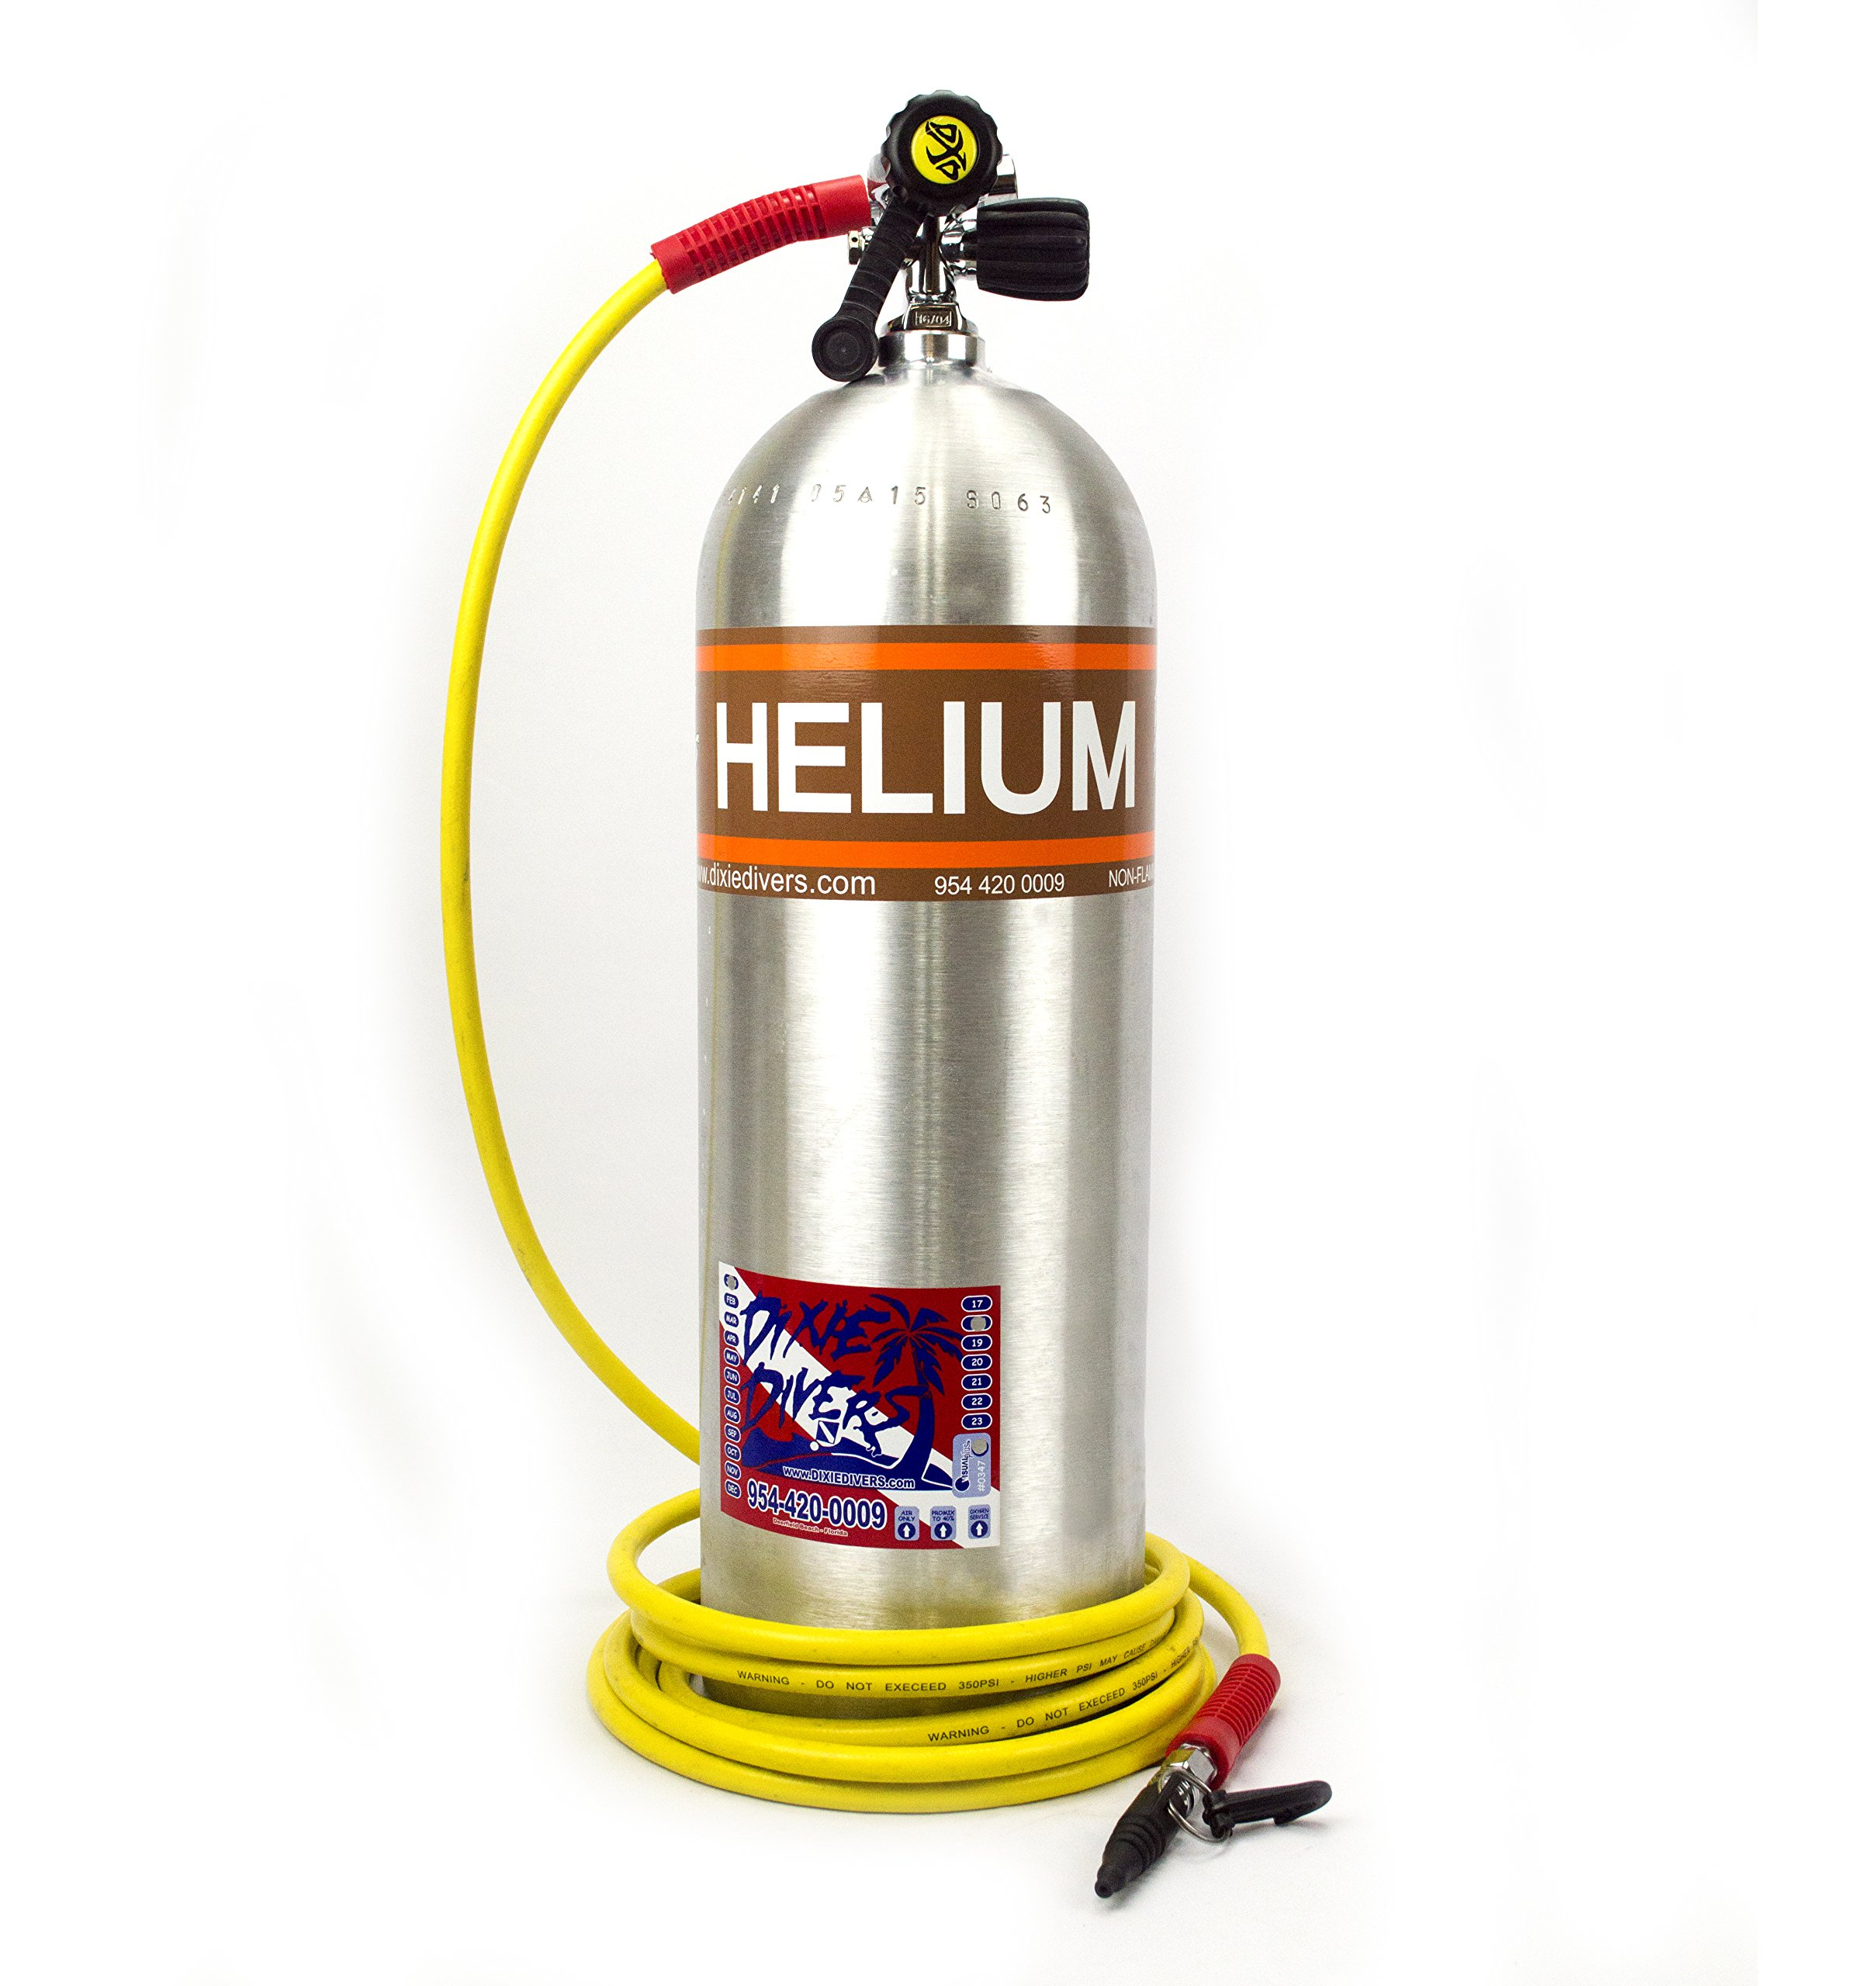 Dixie Divers Helium Tank 30cf or 60cf For Balloons Kite Fishing HE Aluminum Cylinder With Long 10 ft Hose Filler Parties Balloon (60 Cubic Feet) by Dixie Divers